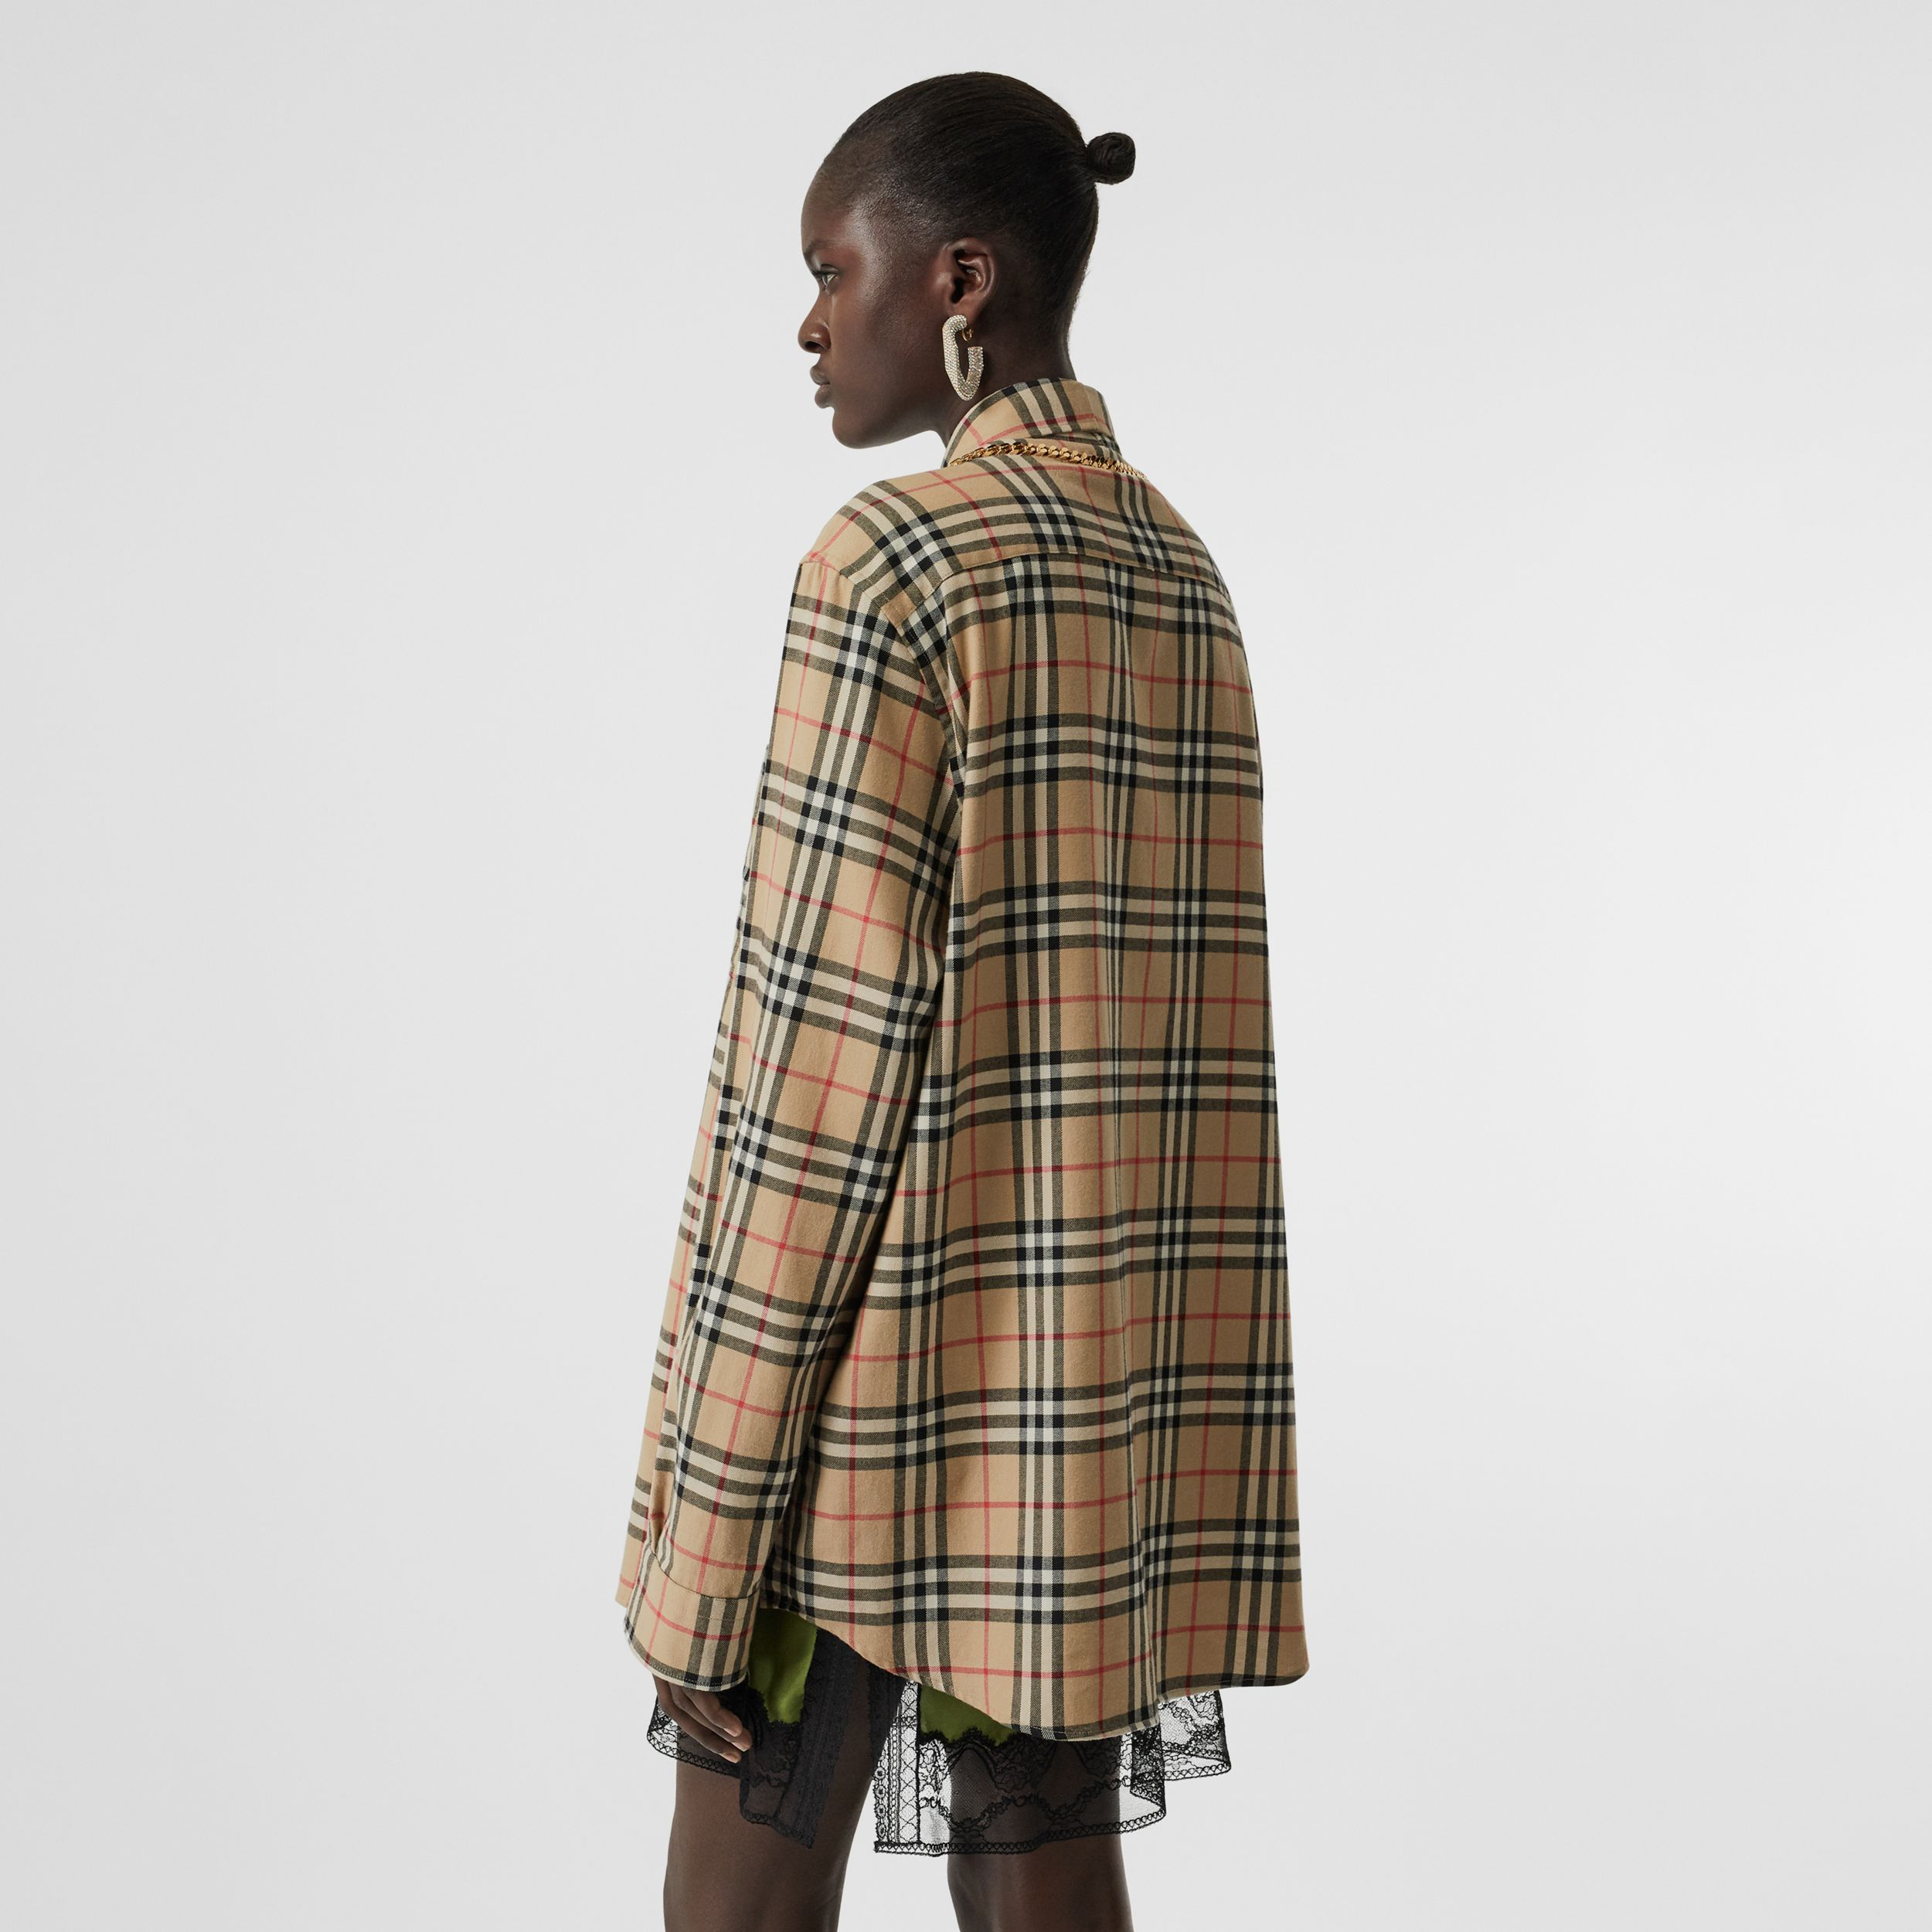 Chain Detail Vintage Check Cotton Flannel Shirt in Archive Beige - Women | Burberry - 3